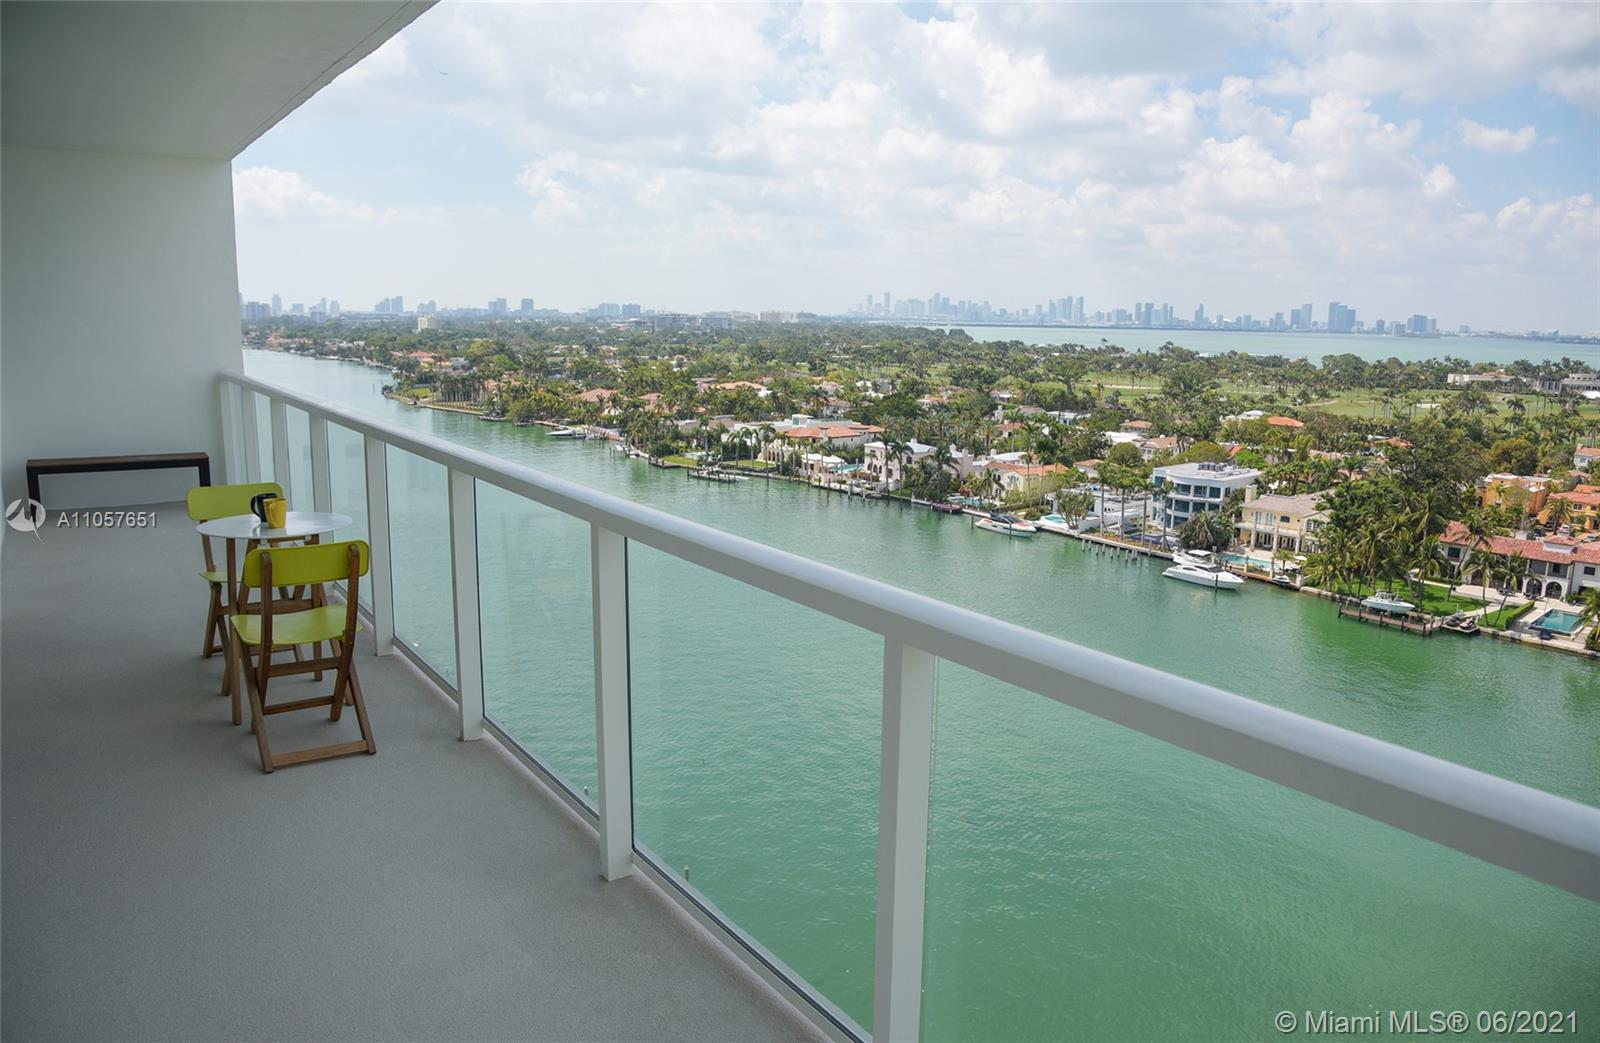 Great Condo completely renovated, spectacular views of Biscayne Bay and Downtown, 2 Large bedrooms,